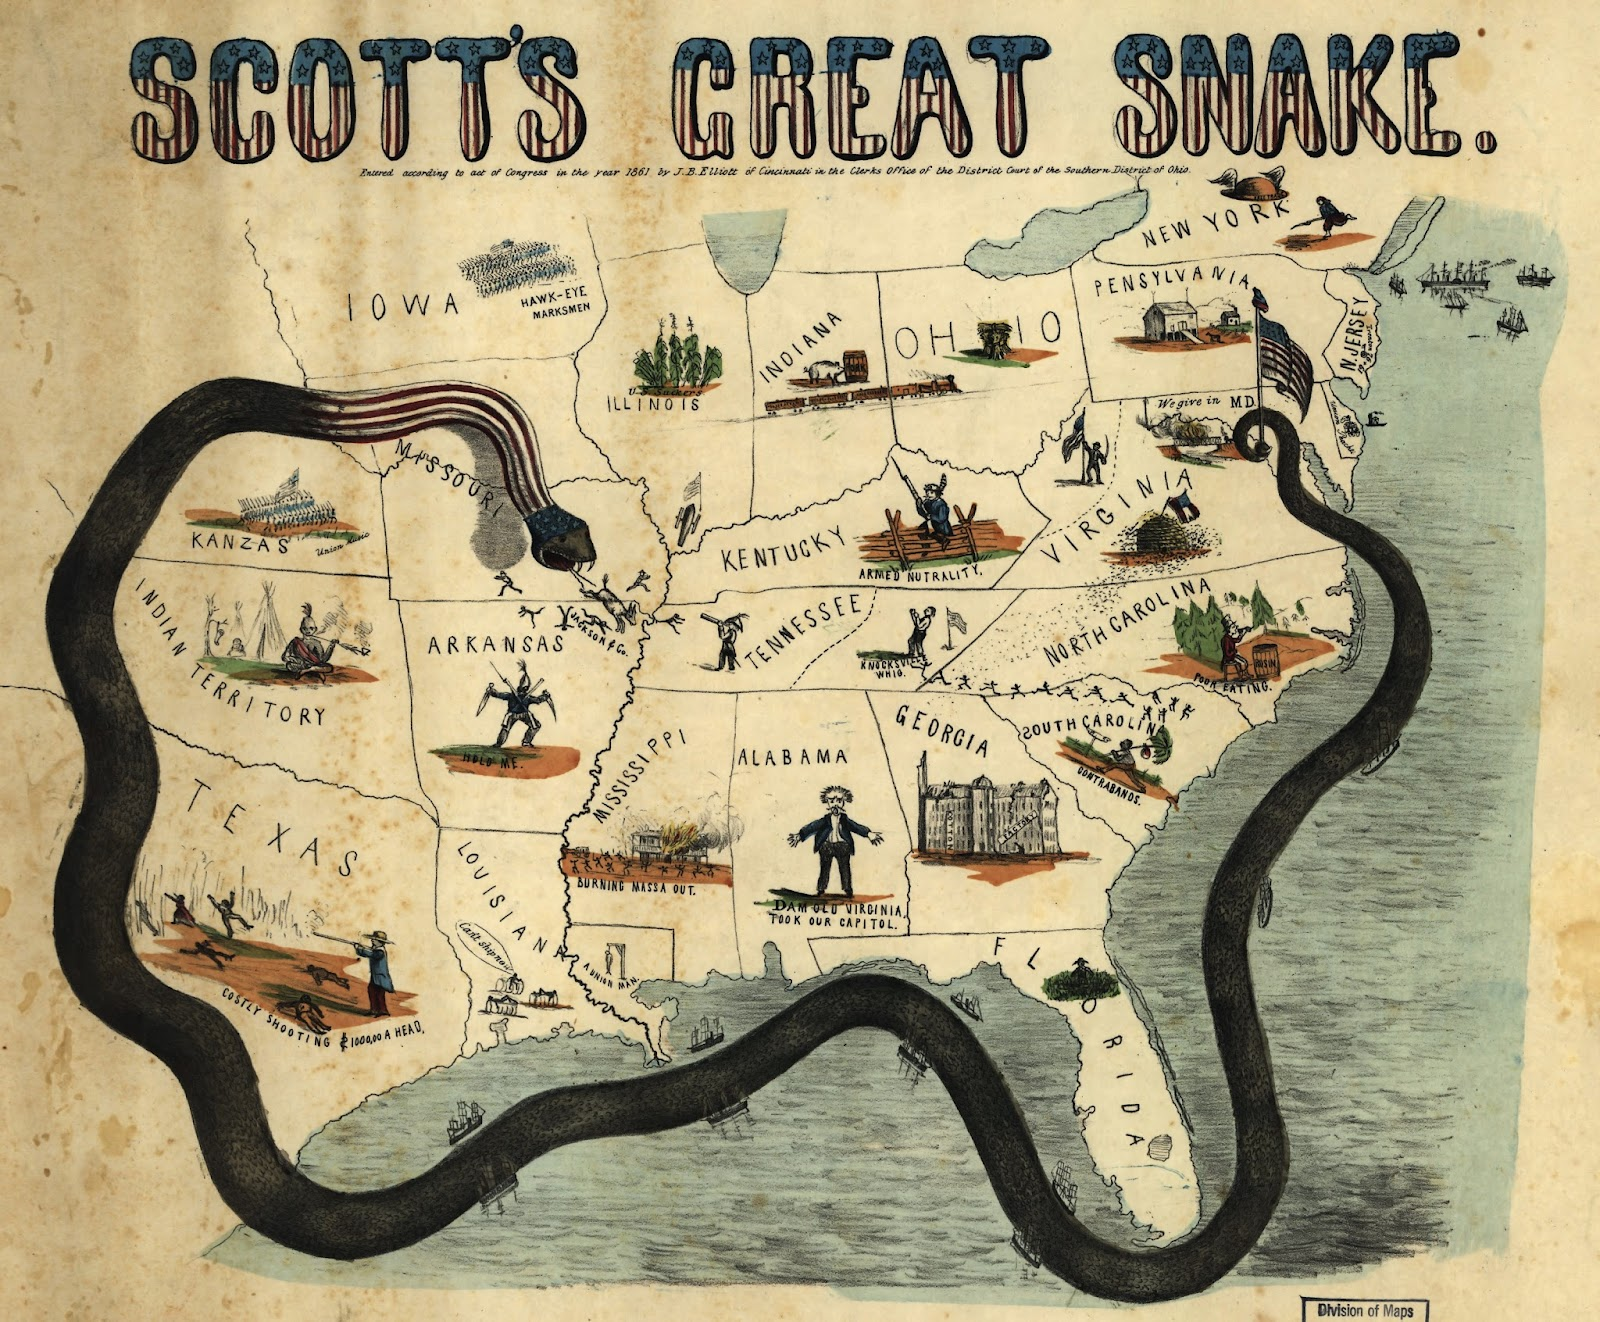 Vintage Infographic Civil War Map Scott's Great Snake (1861)